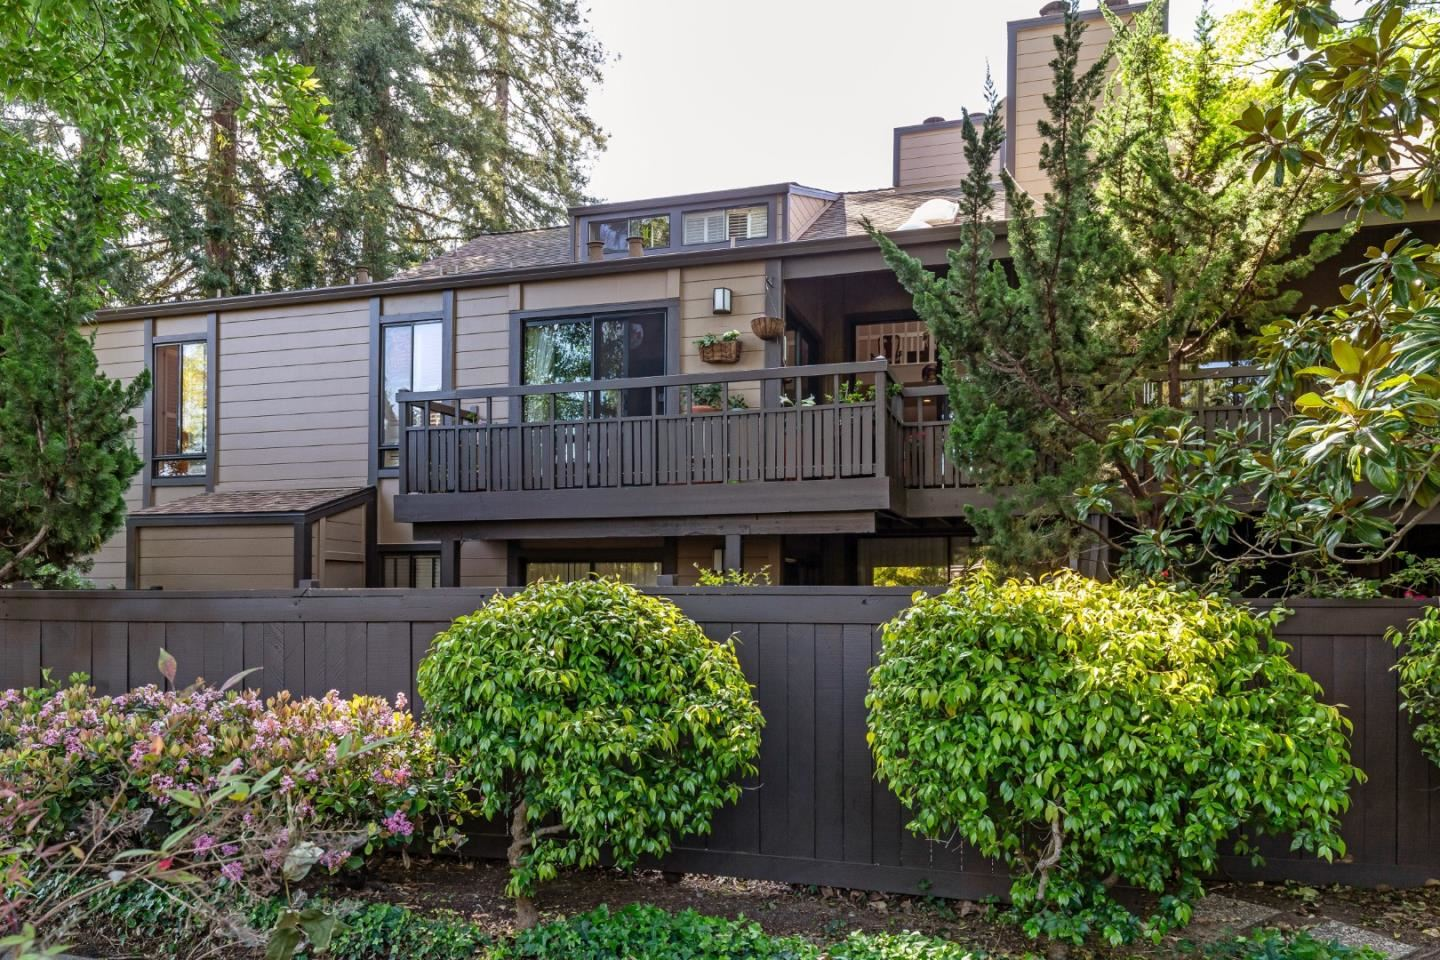 Photo for 1963 Rock Street #16, MOUNTAIN VIEW, CA 94043 (MLS # ML81841028)